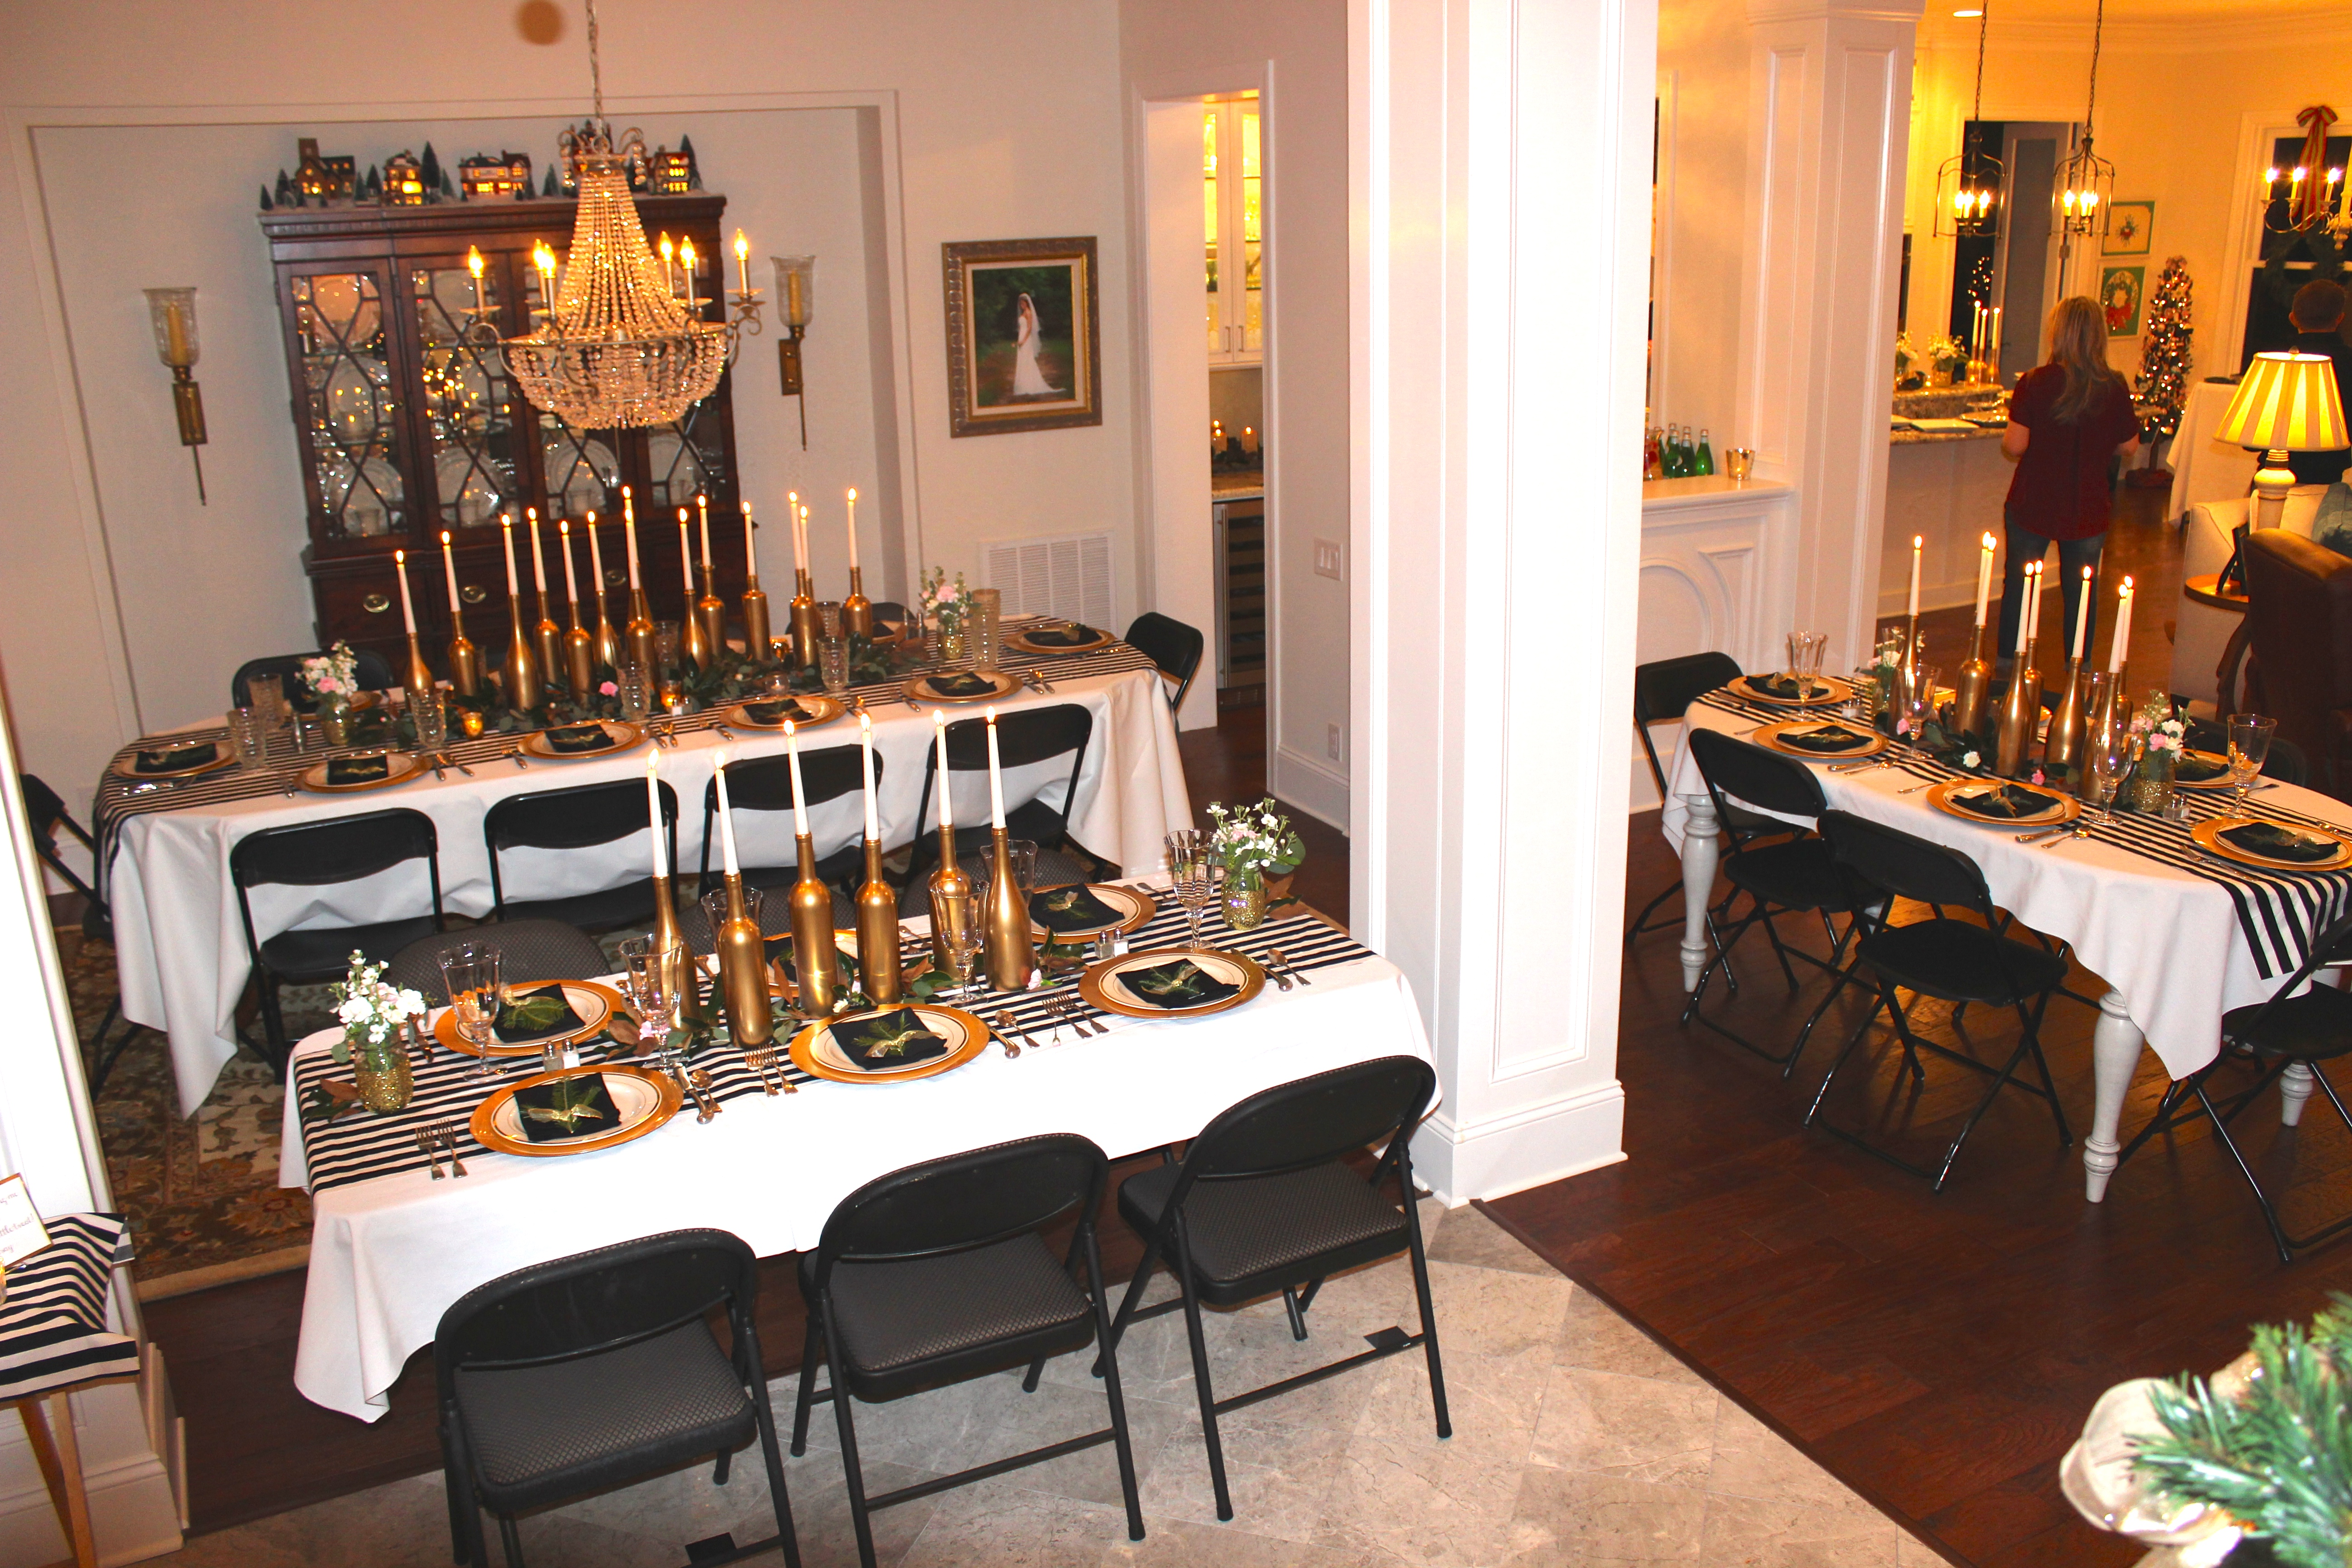 Birthday Dinner Party Ideas Part - 45: Gold, Black, And White: My 30th Birthday Dinner Party - SevenLayerCharlotte